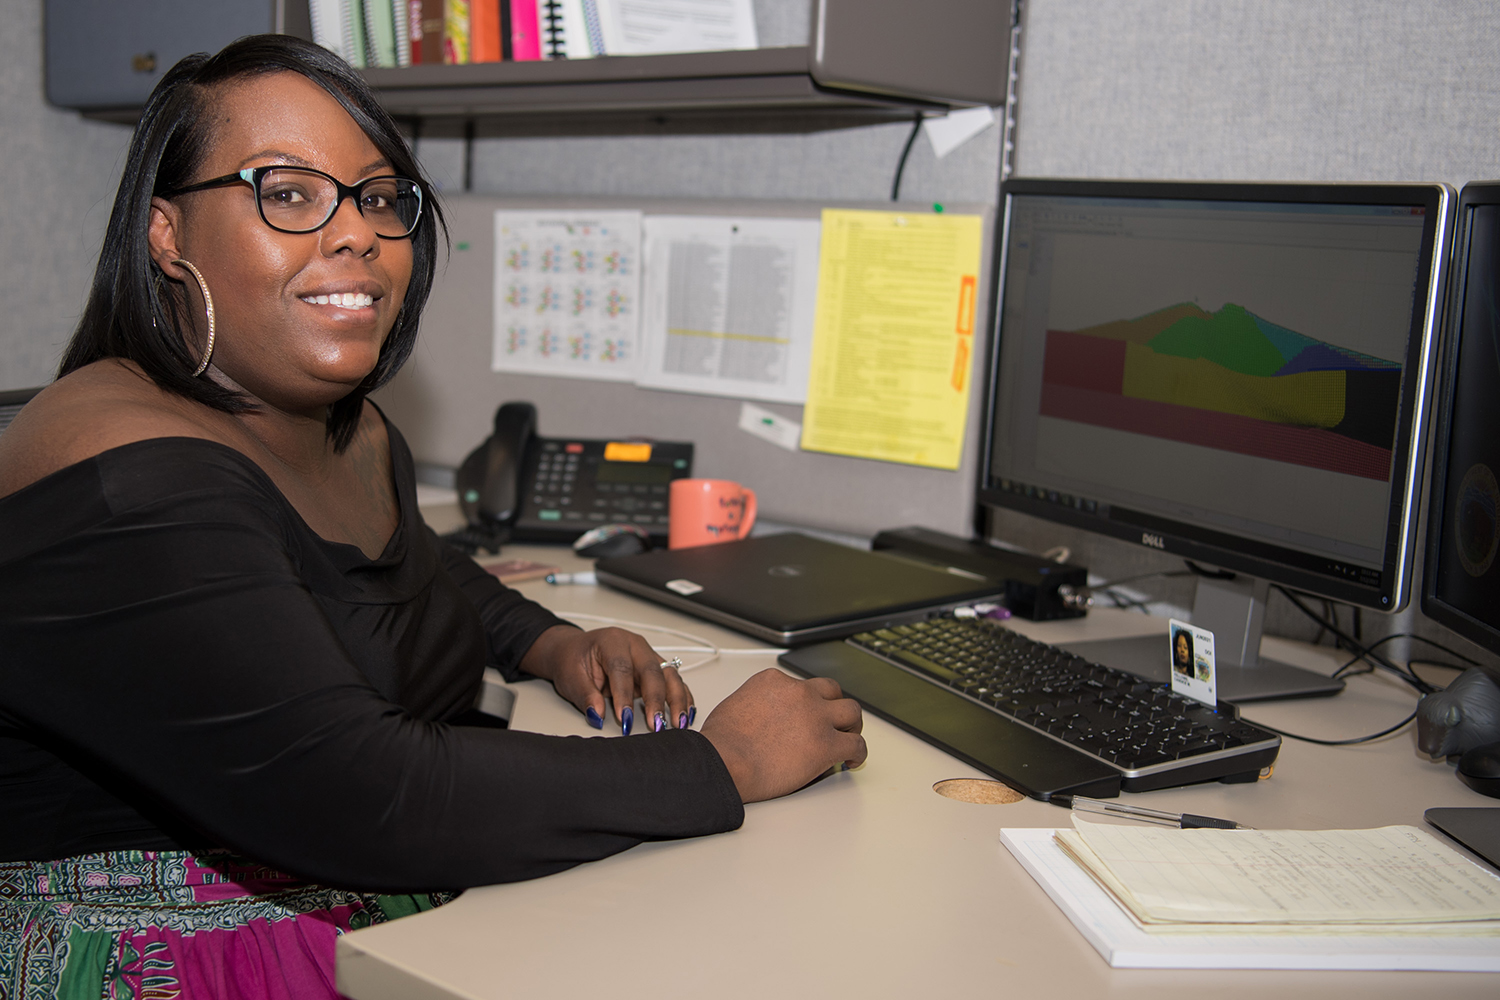 Candice Barnes, Geotechnical Engineer with the Bureau of Reclamation